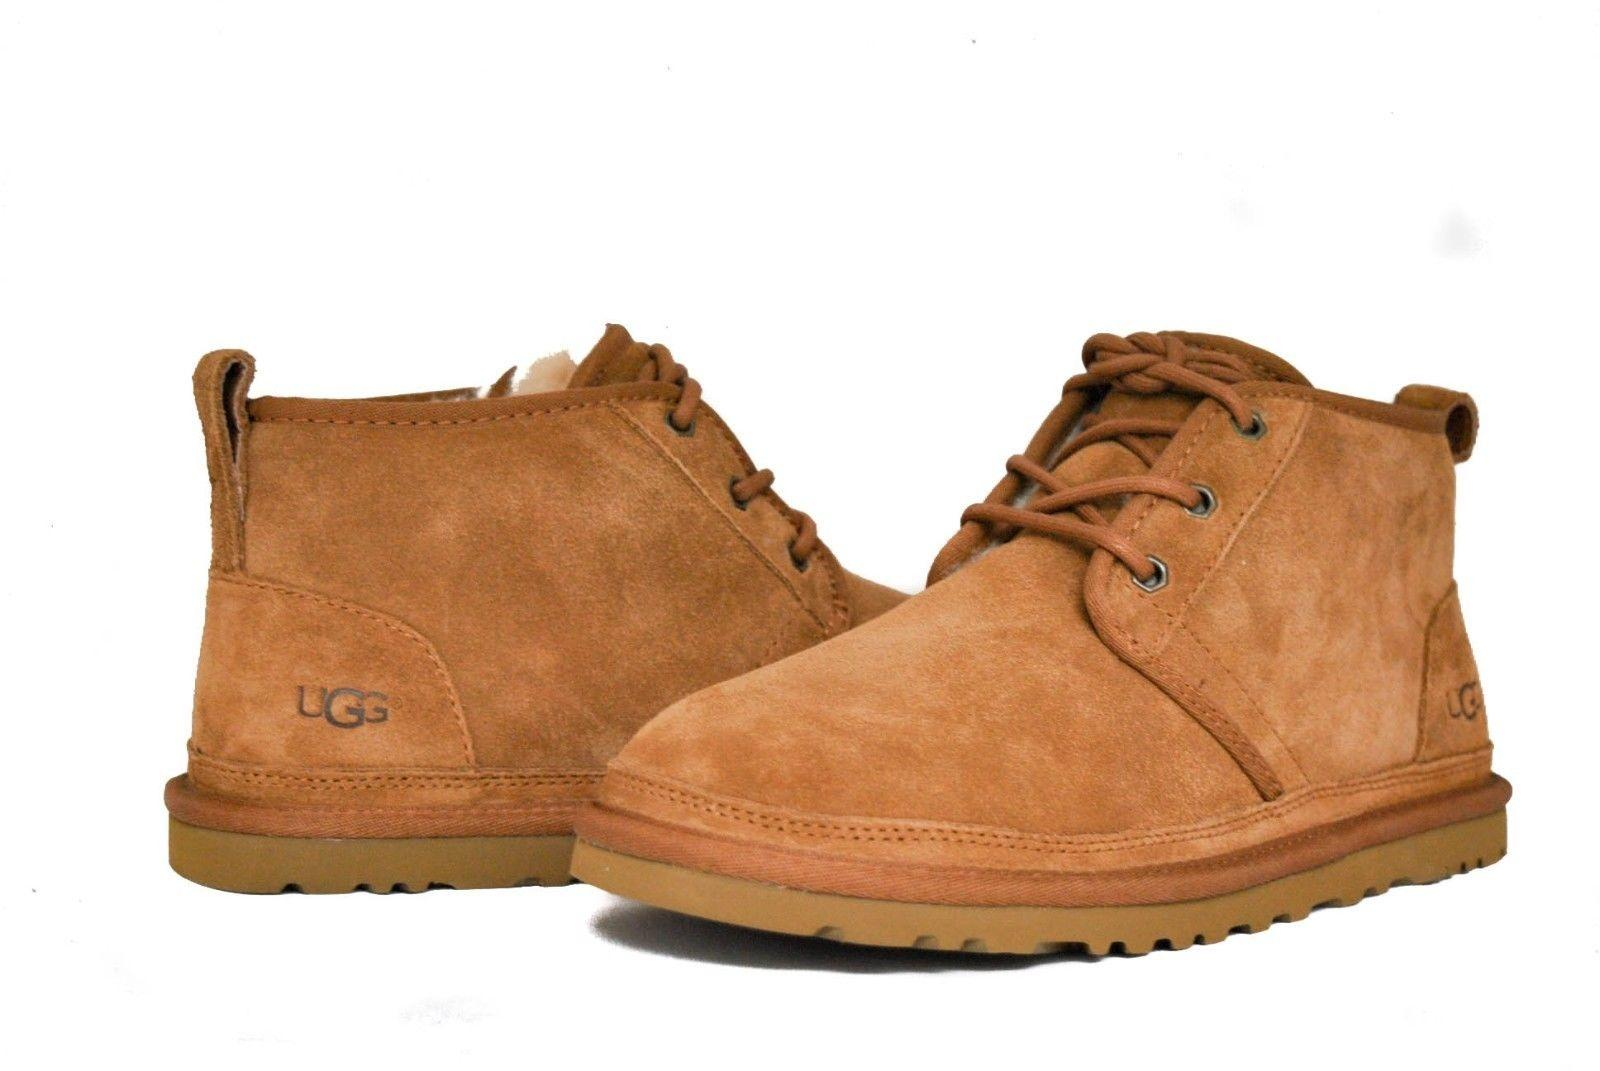 UGG Australia For Her 3236 12 Chestnut Boots ...